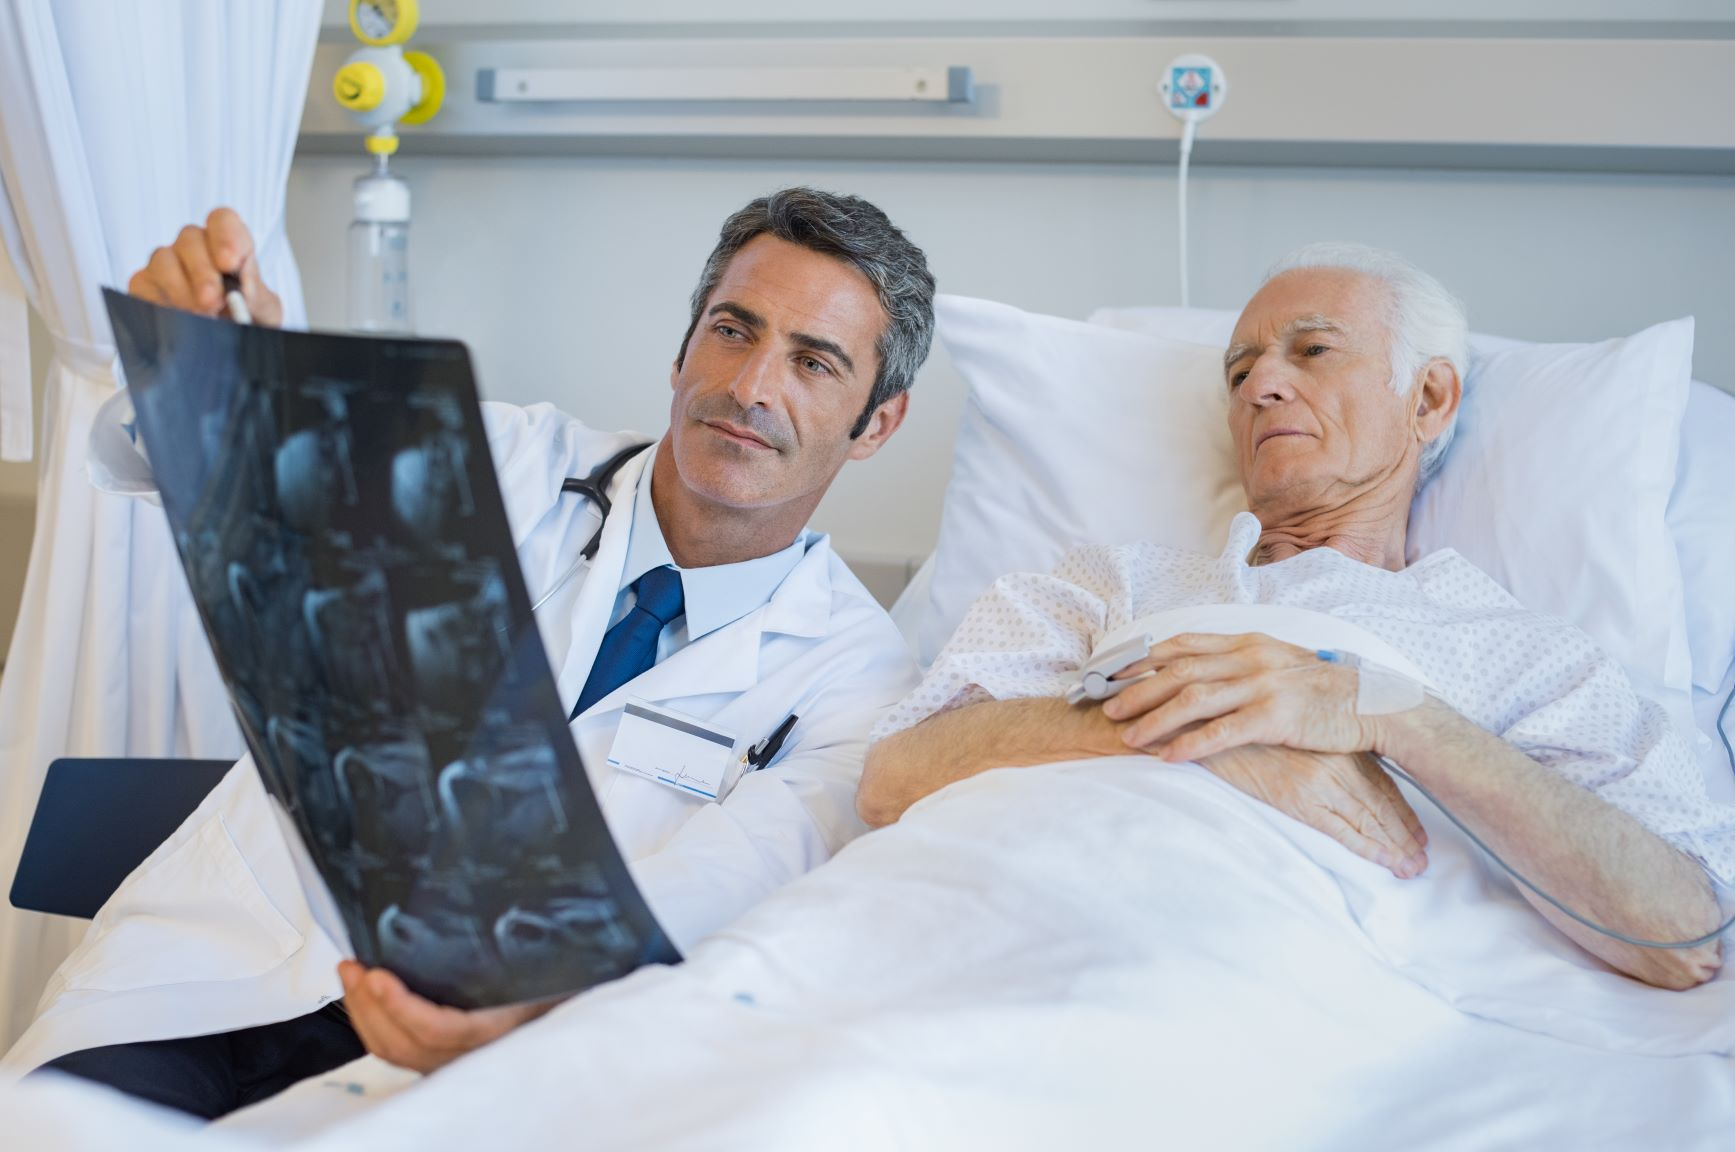 Male physician reviewing x-rays with an older male patient in a hospital bed